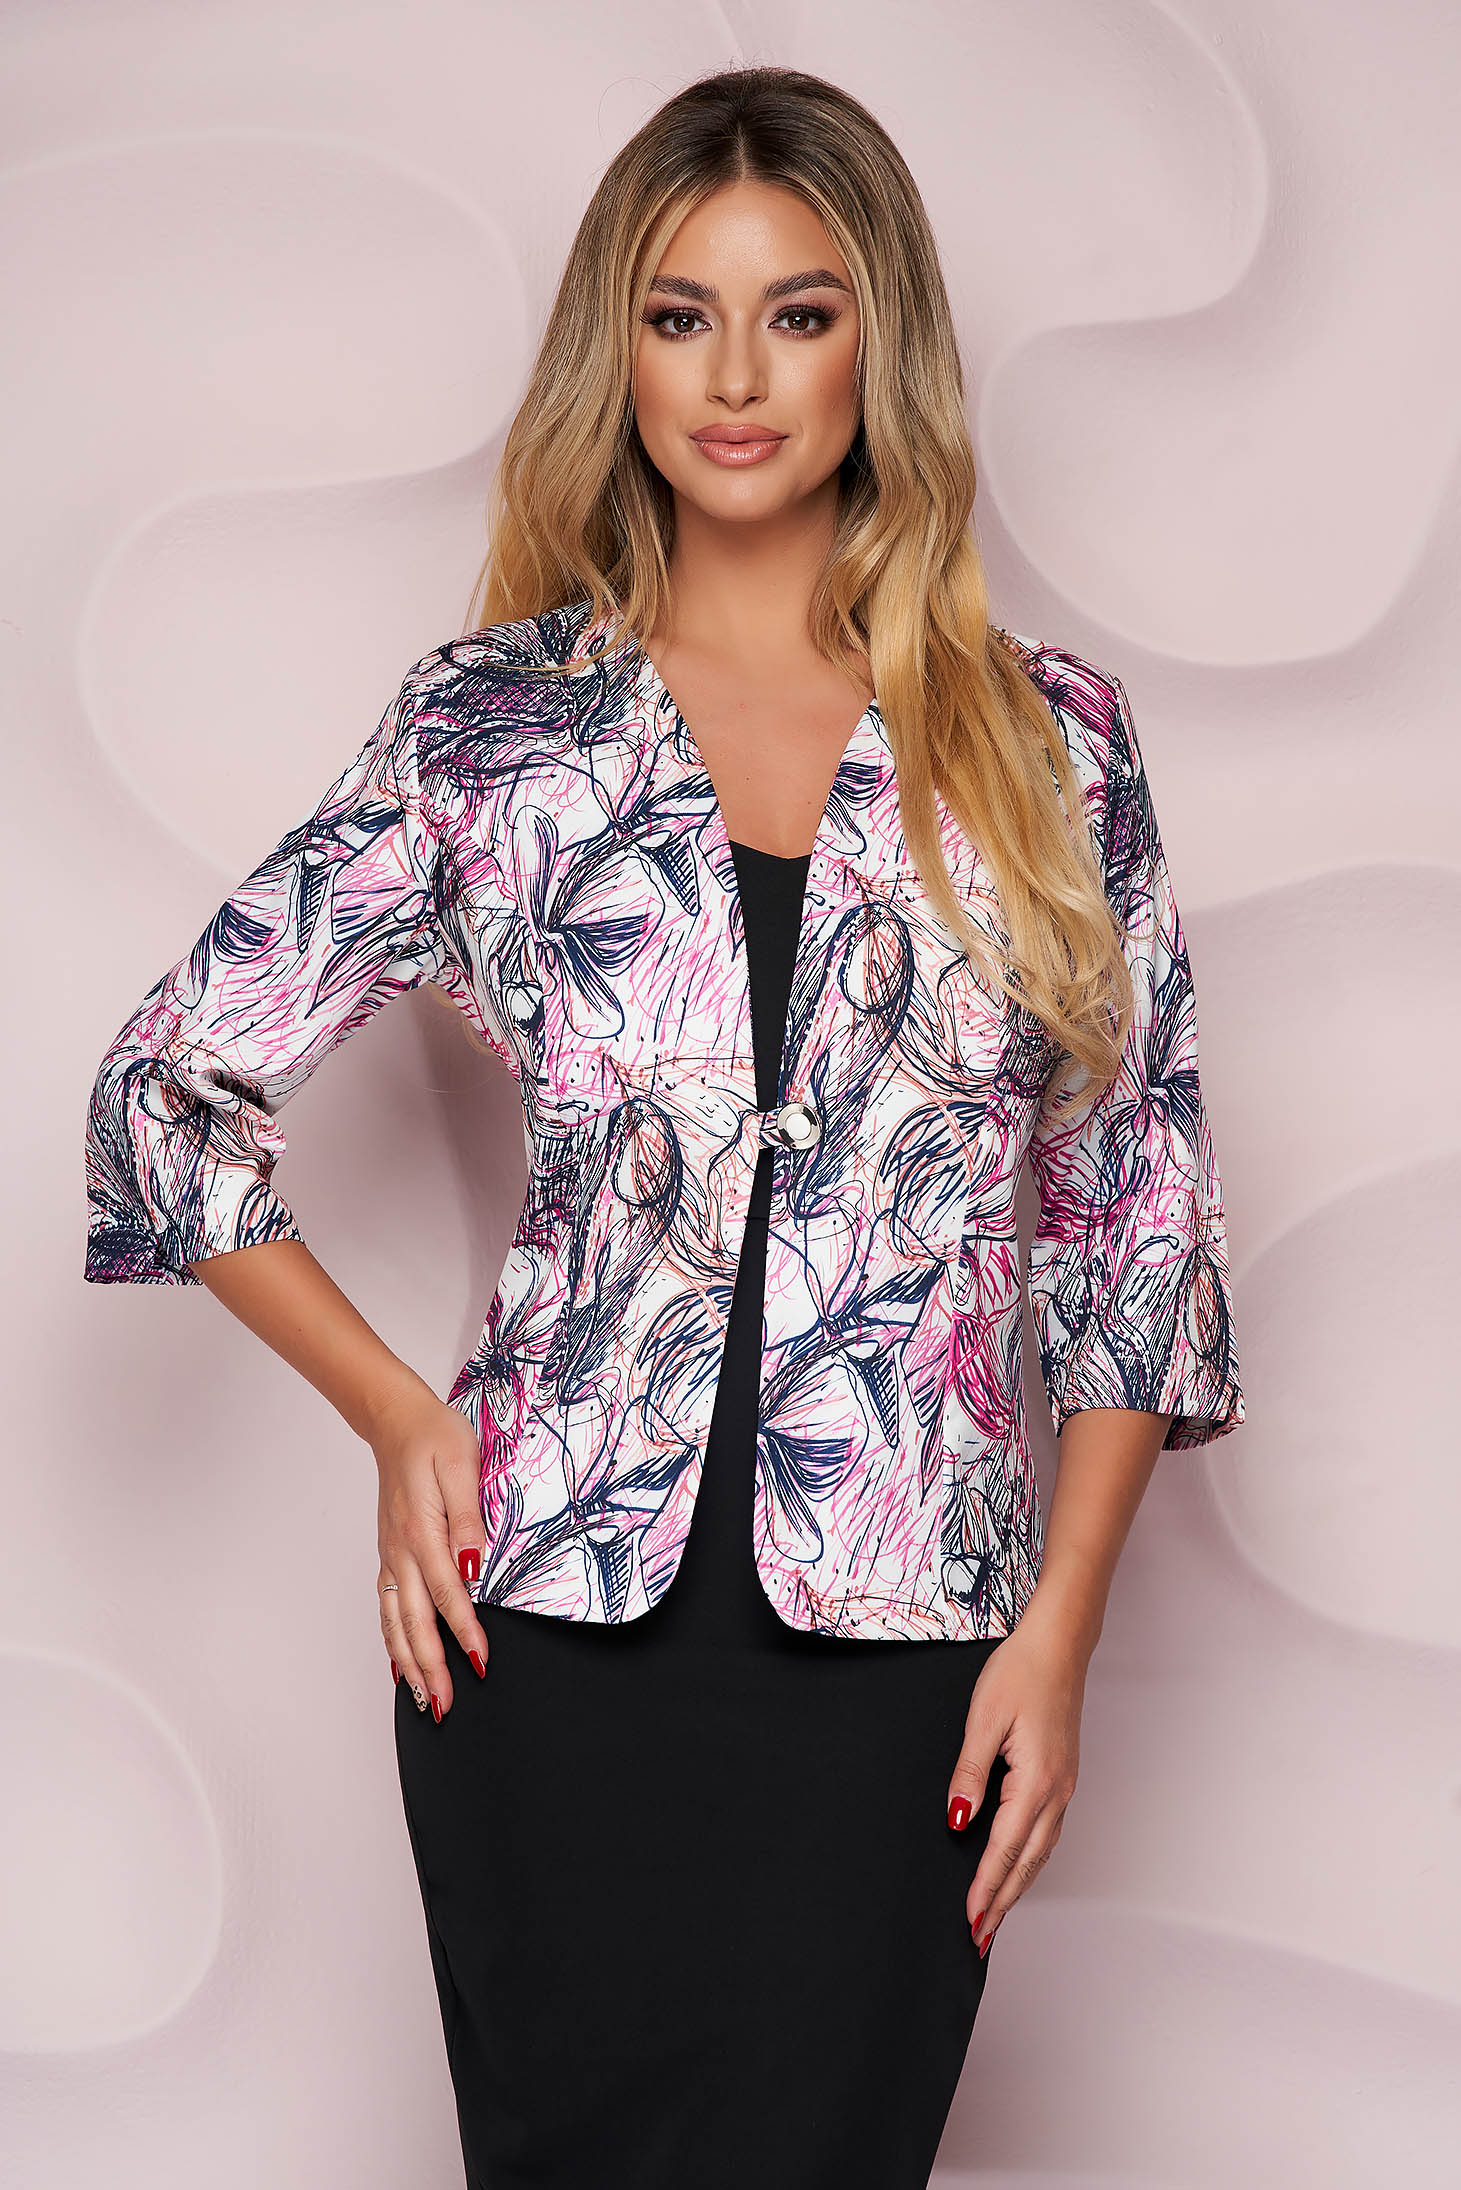 Jacket elegant cloth tented with floral print thin fabric